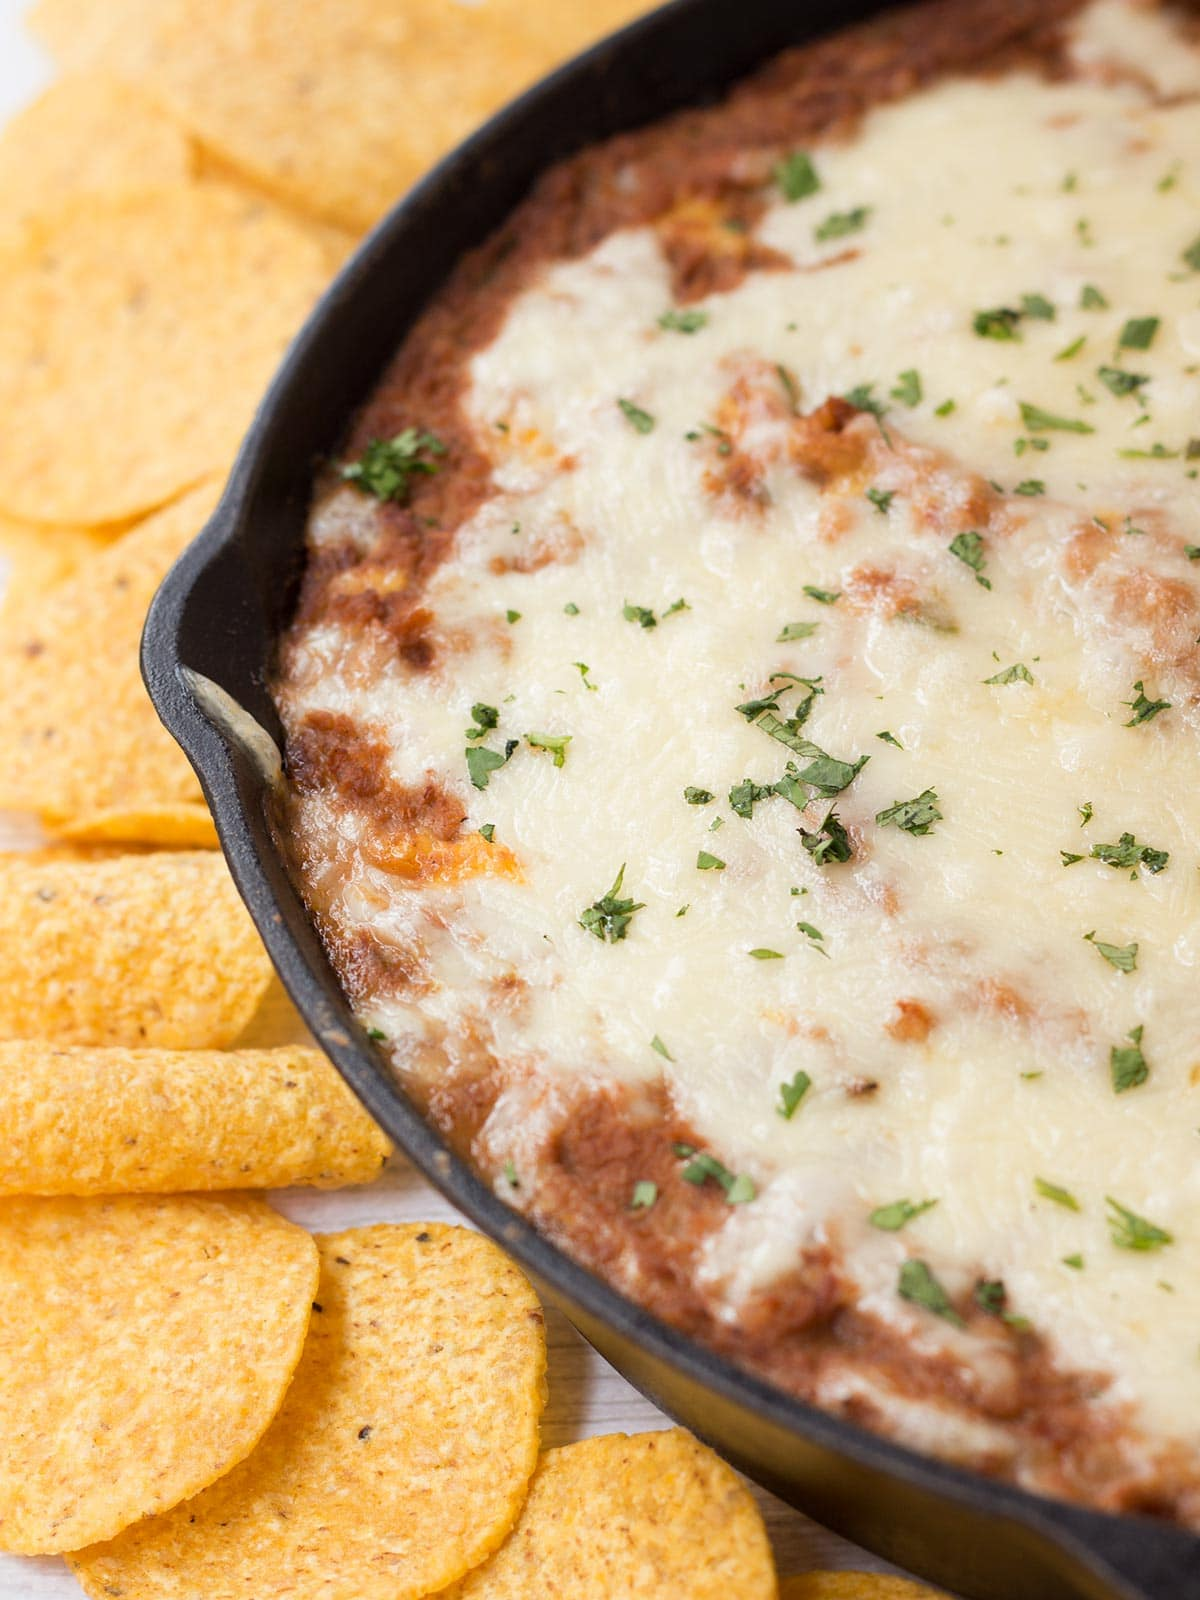 Skillet of baked refried beans with cheese on top and tortilla chips on side of pan.